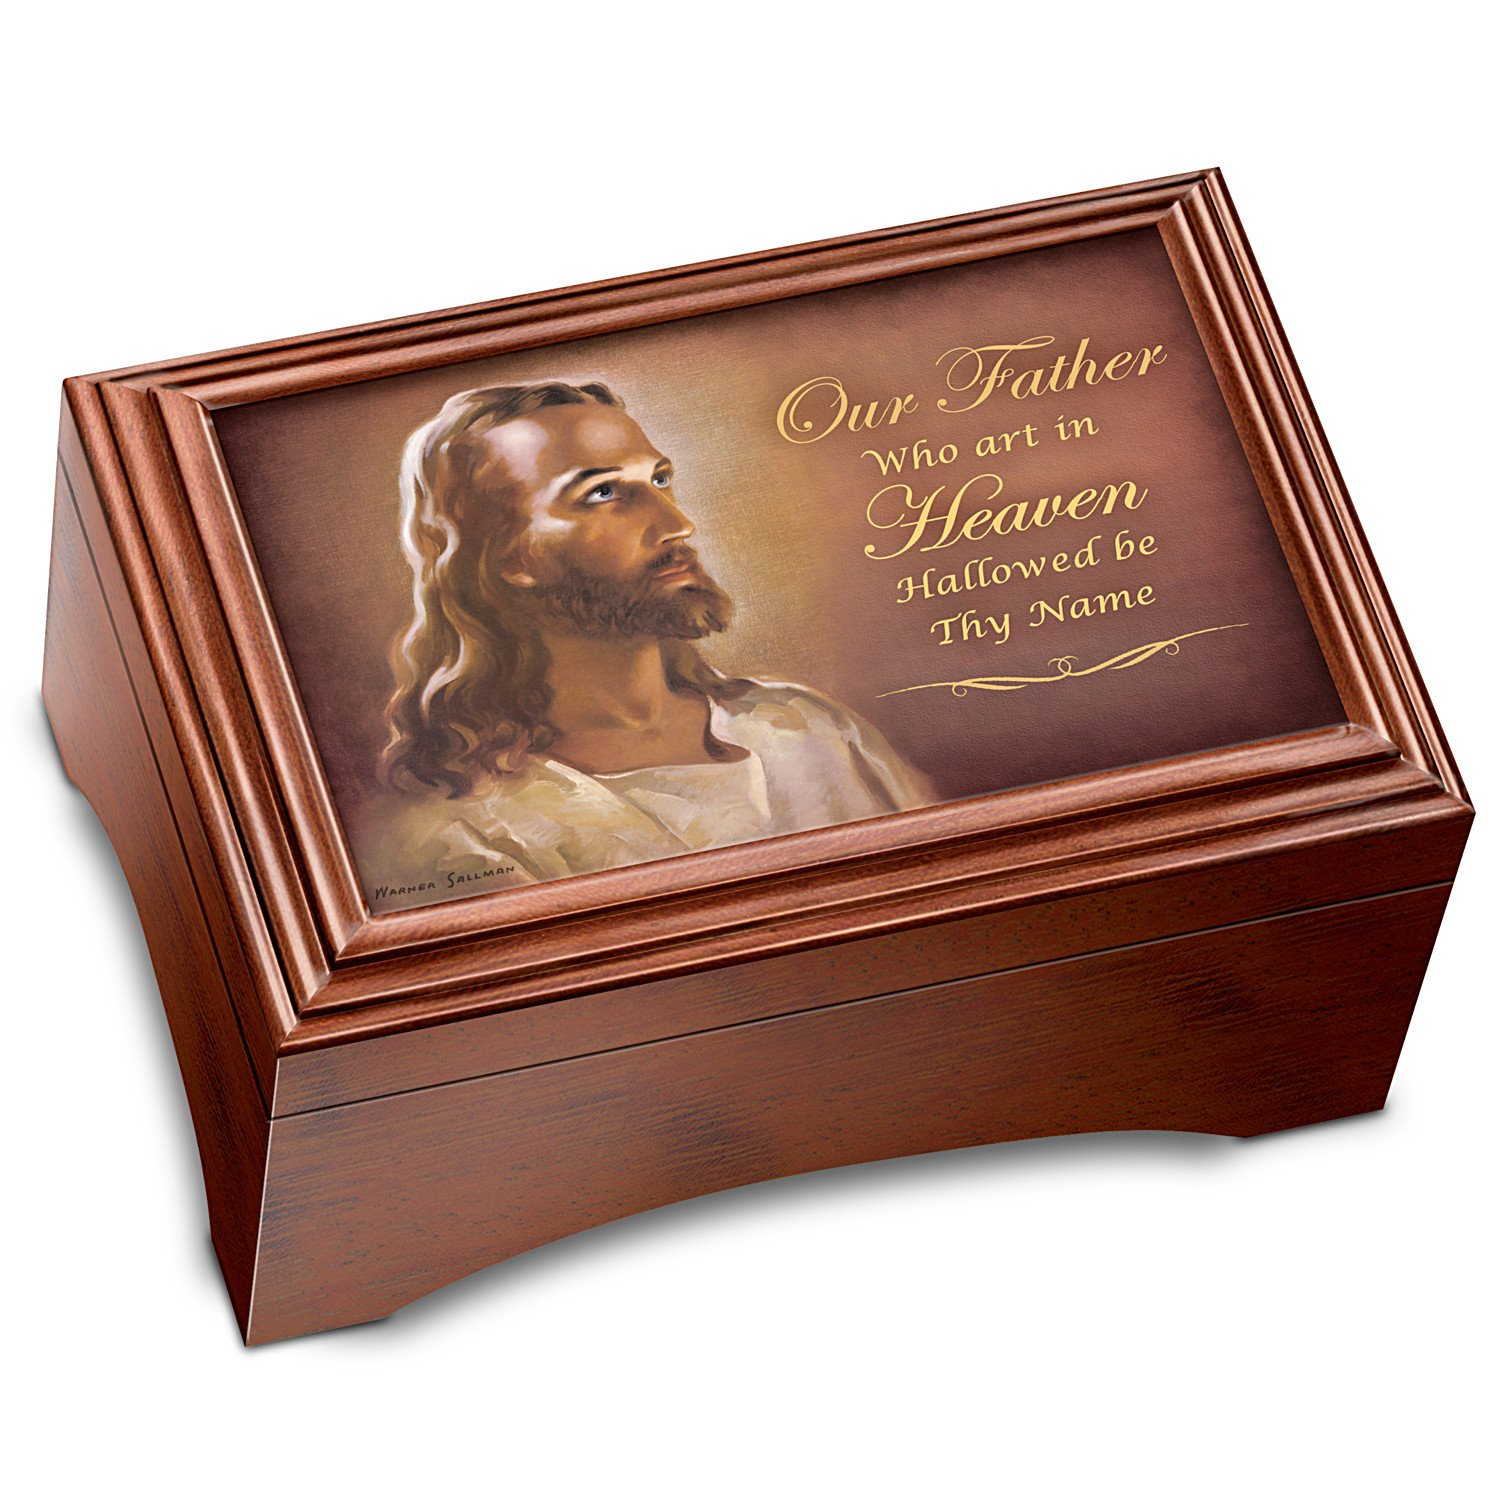 Image of Jesus, The Lord's Prayer Music Box with Wood Cross